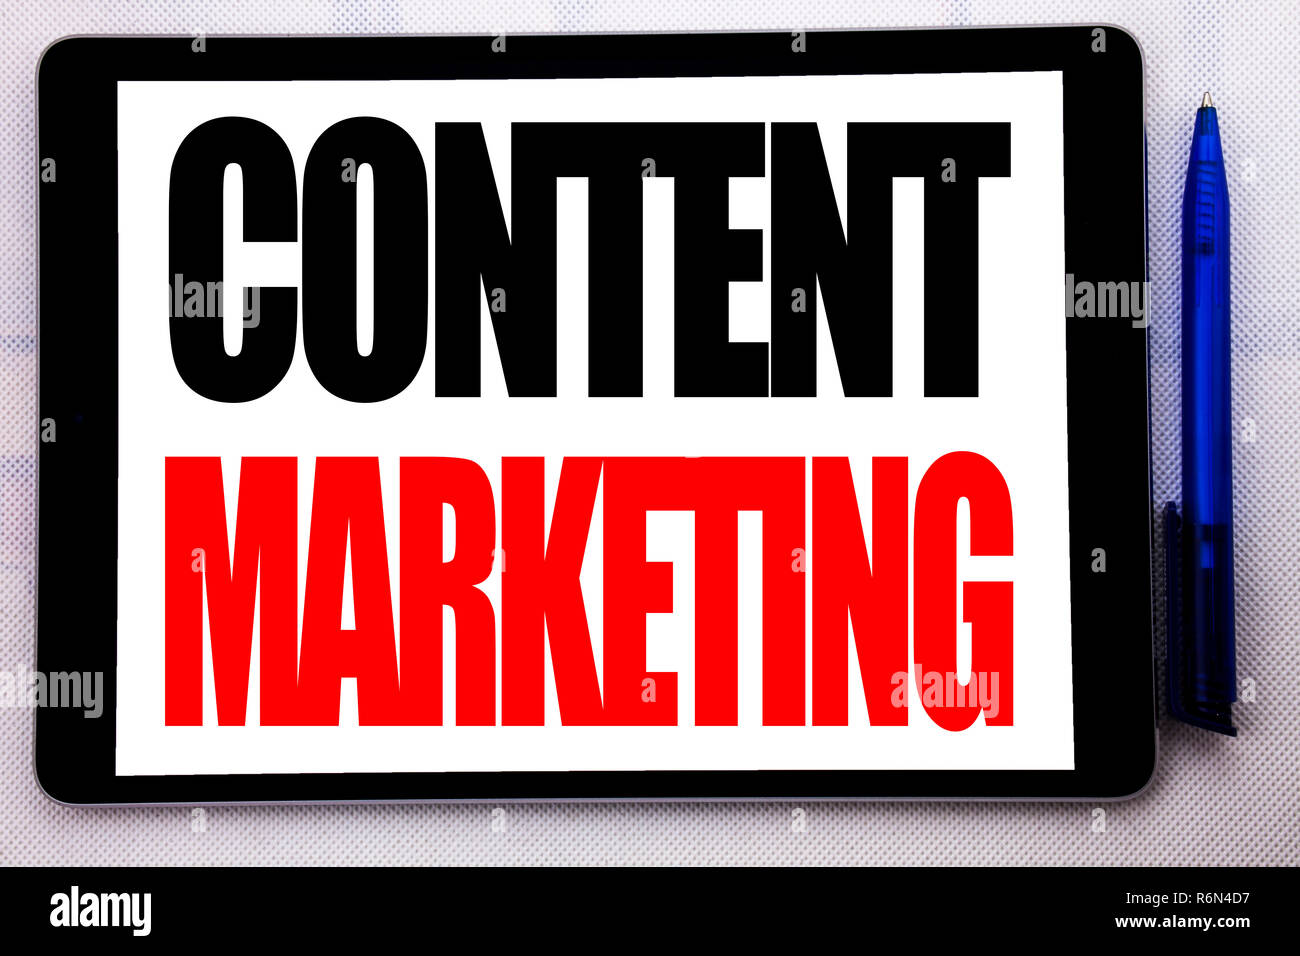 Conceptual hand writing text caption inspiration showing Content Marketing. Business concept for Online Media Plan written on tablet computer on the white background with pen in the office. Stock Photo